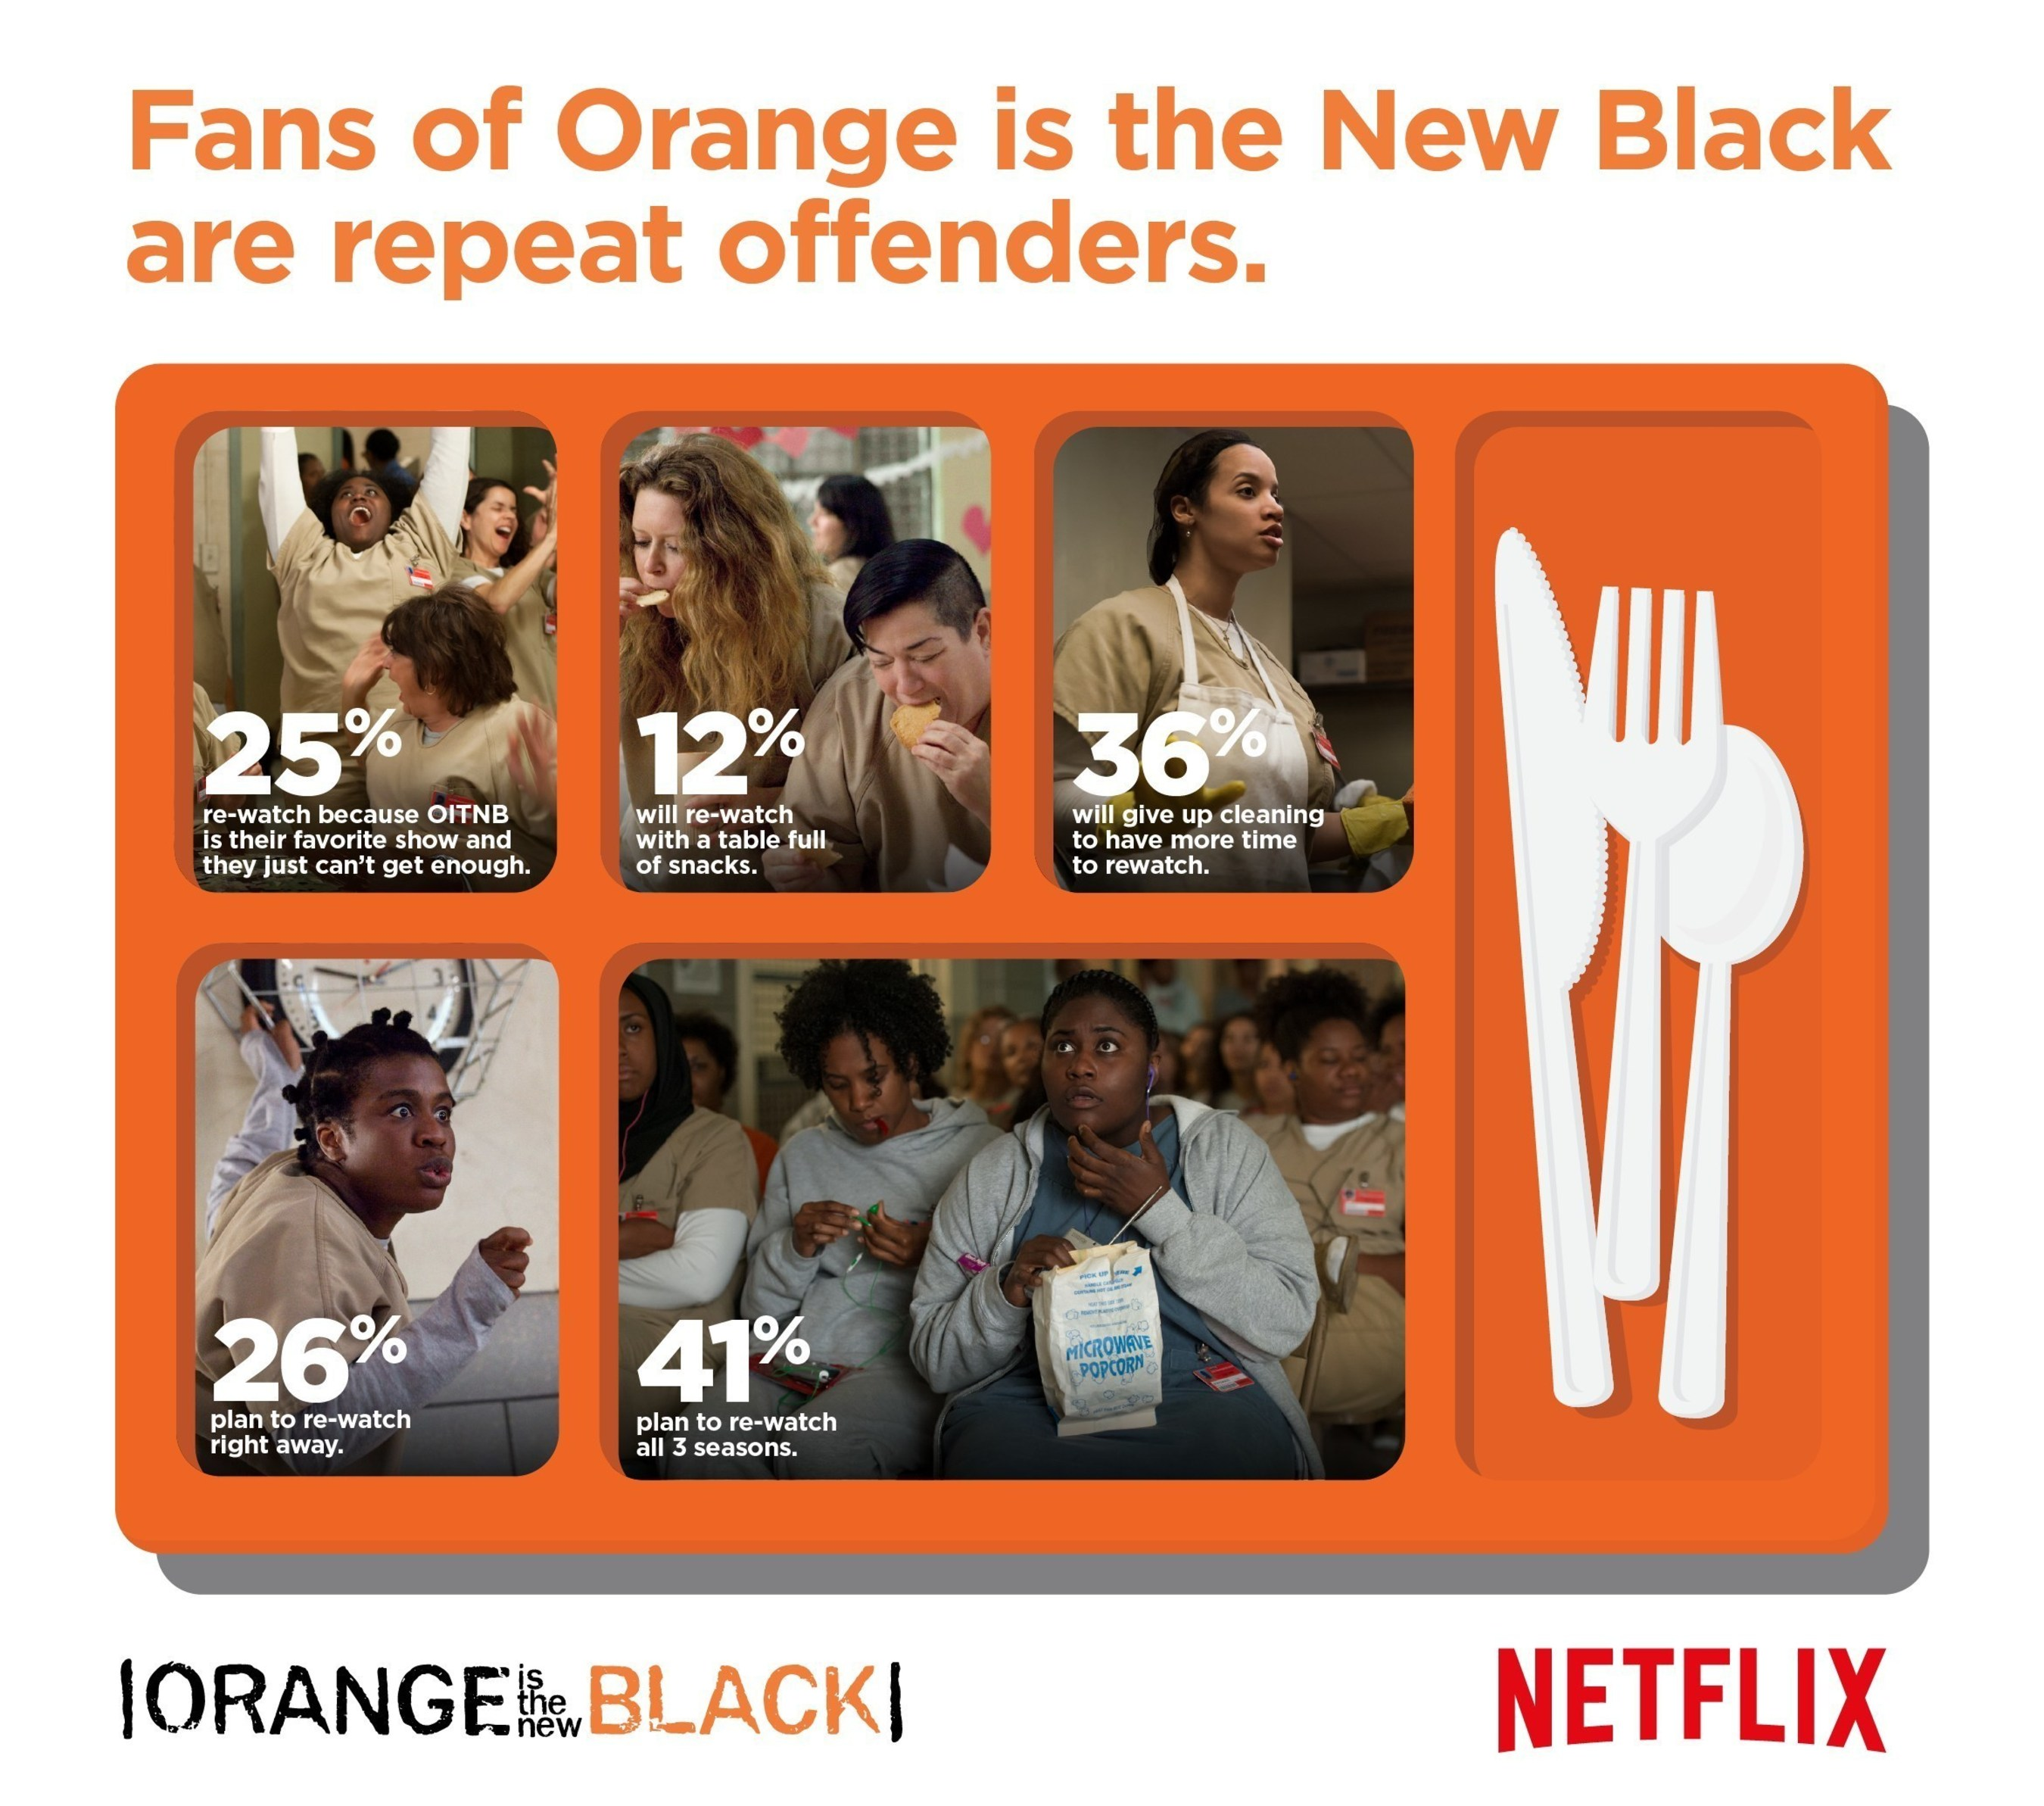 Netflix Finds Fans of Orange is the New Black Are Repeat Offenders